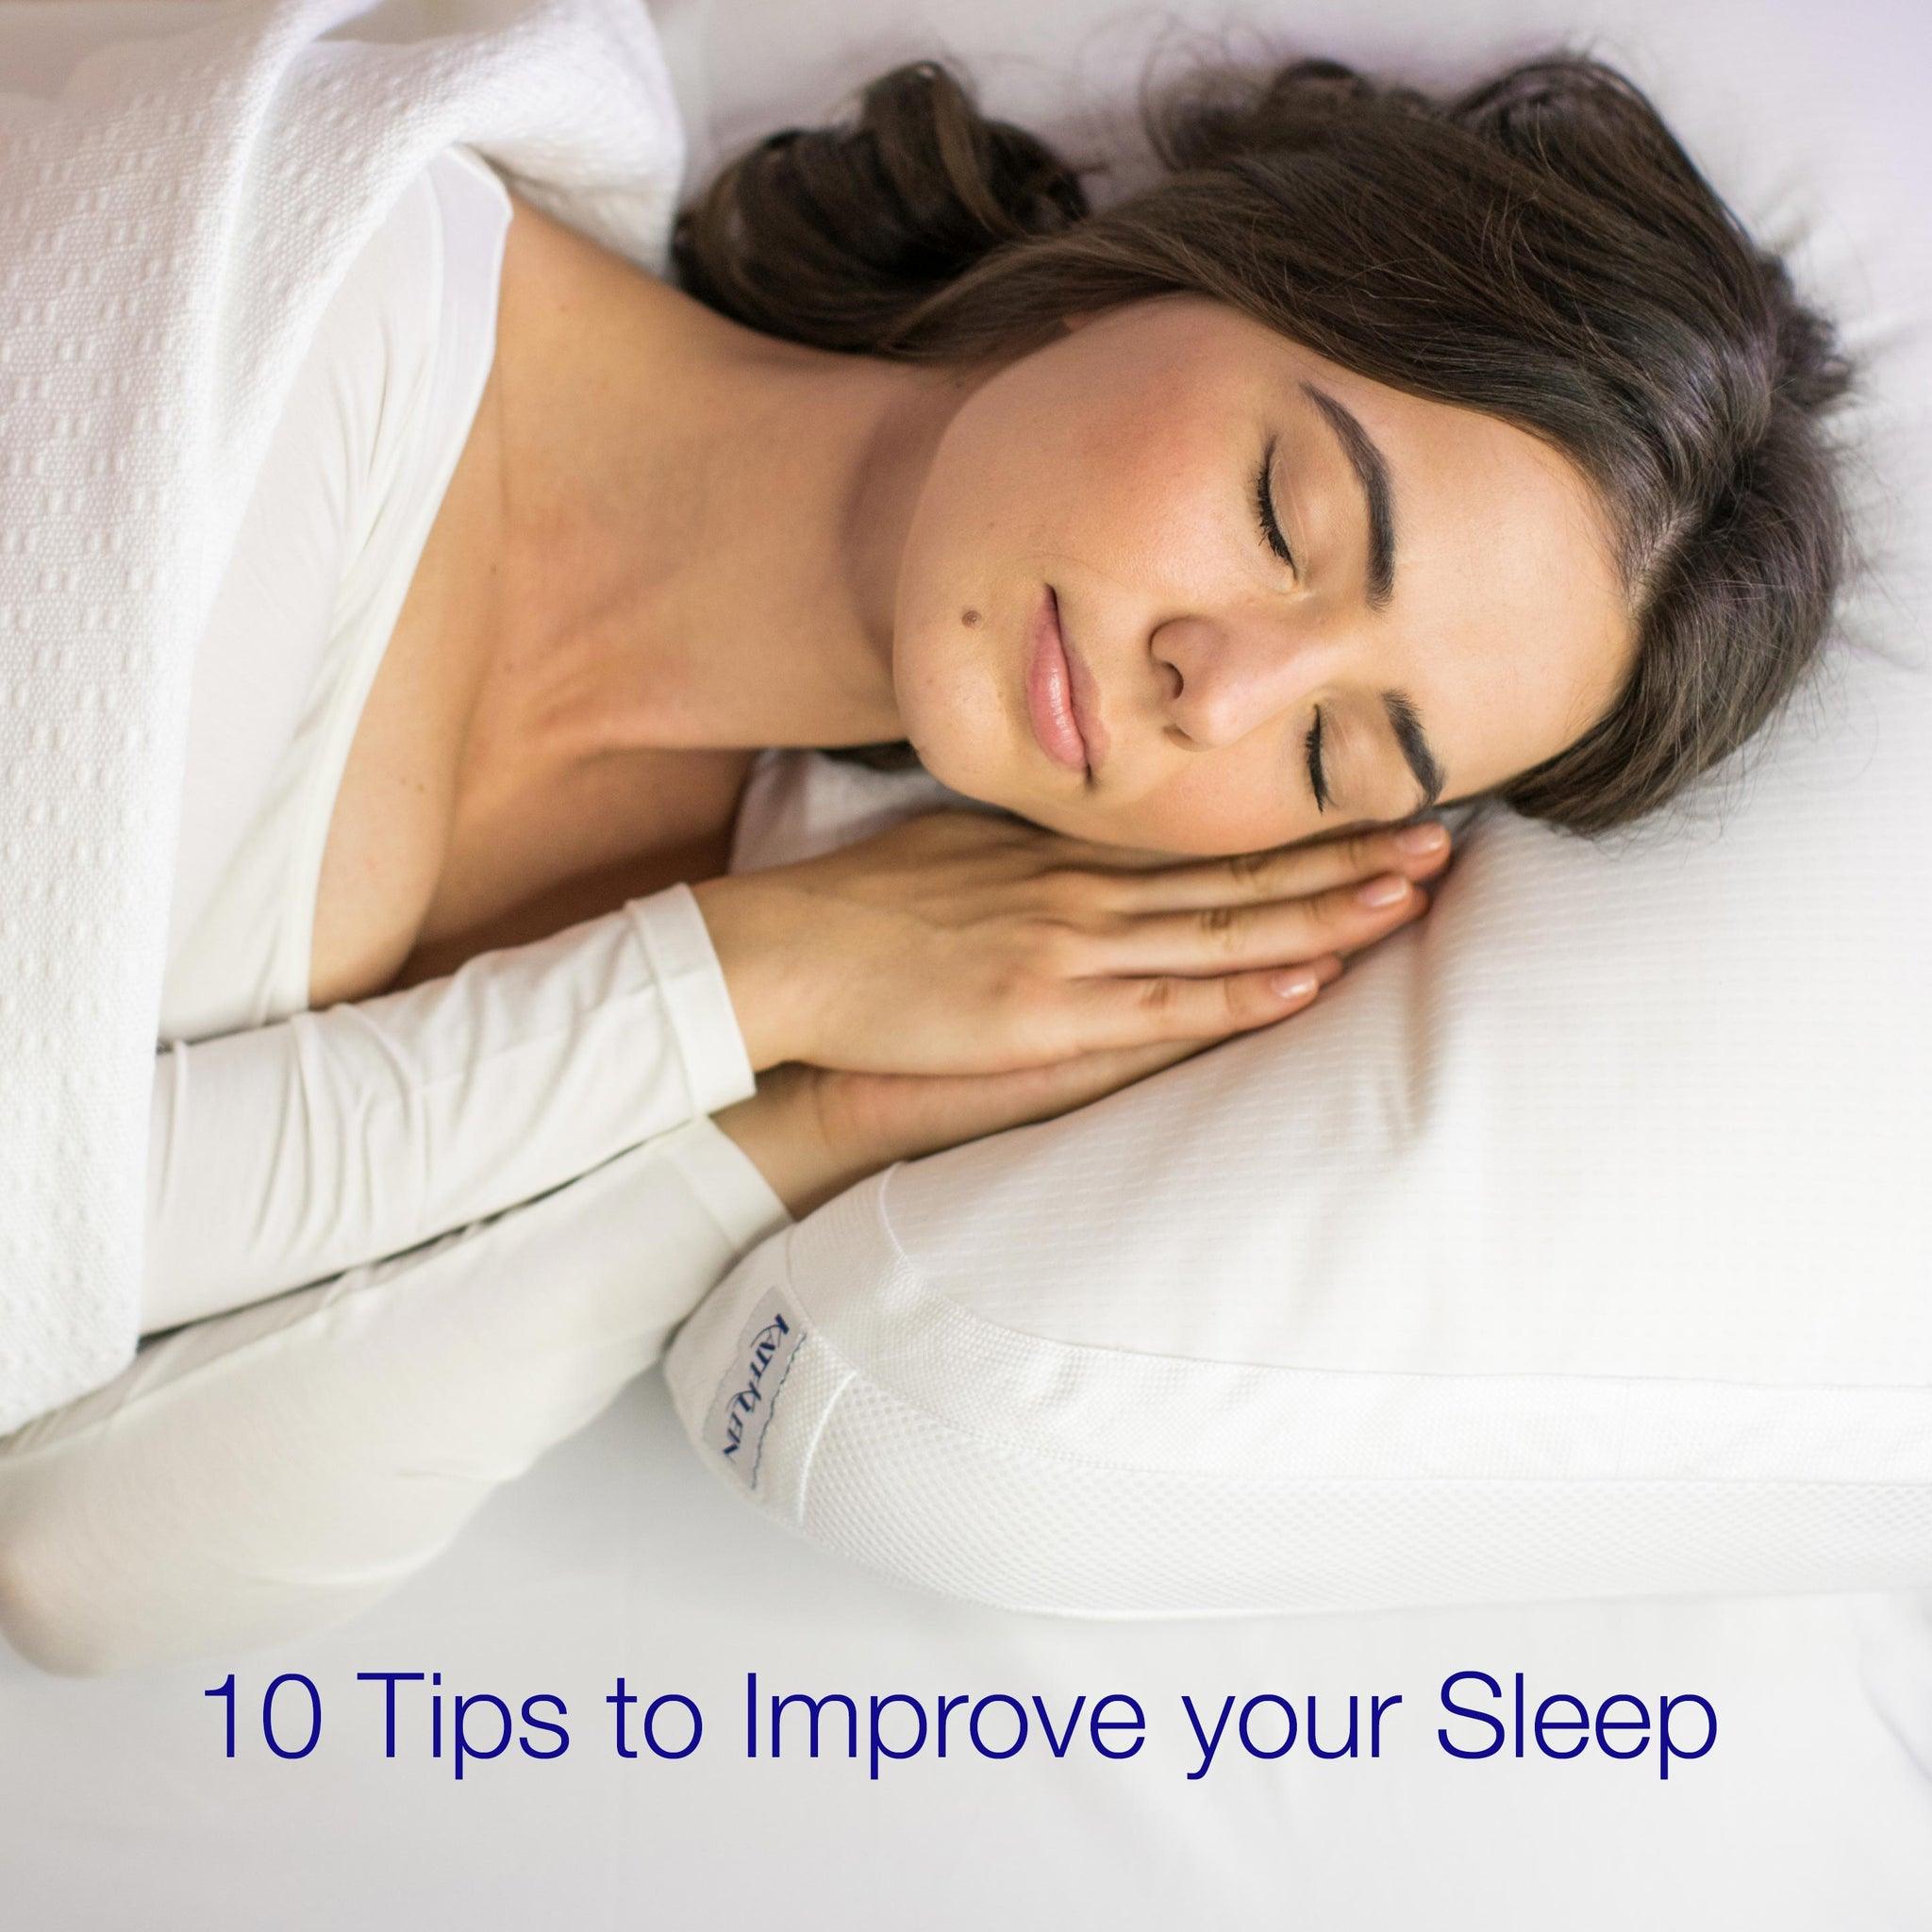 10 Tips to Improve your Sleep